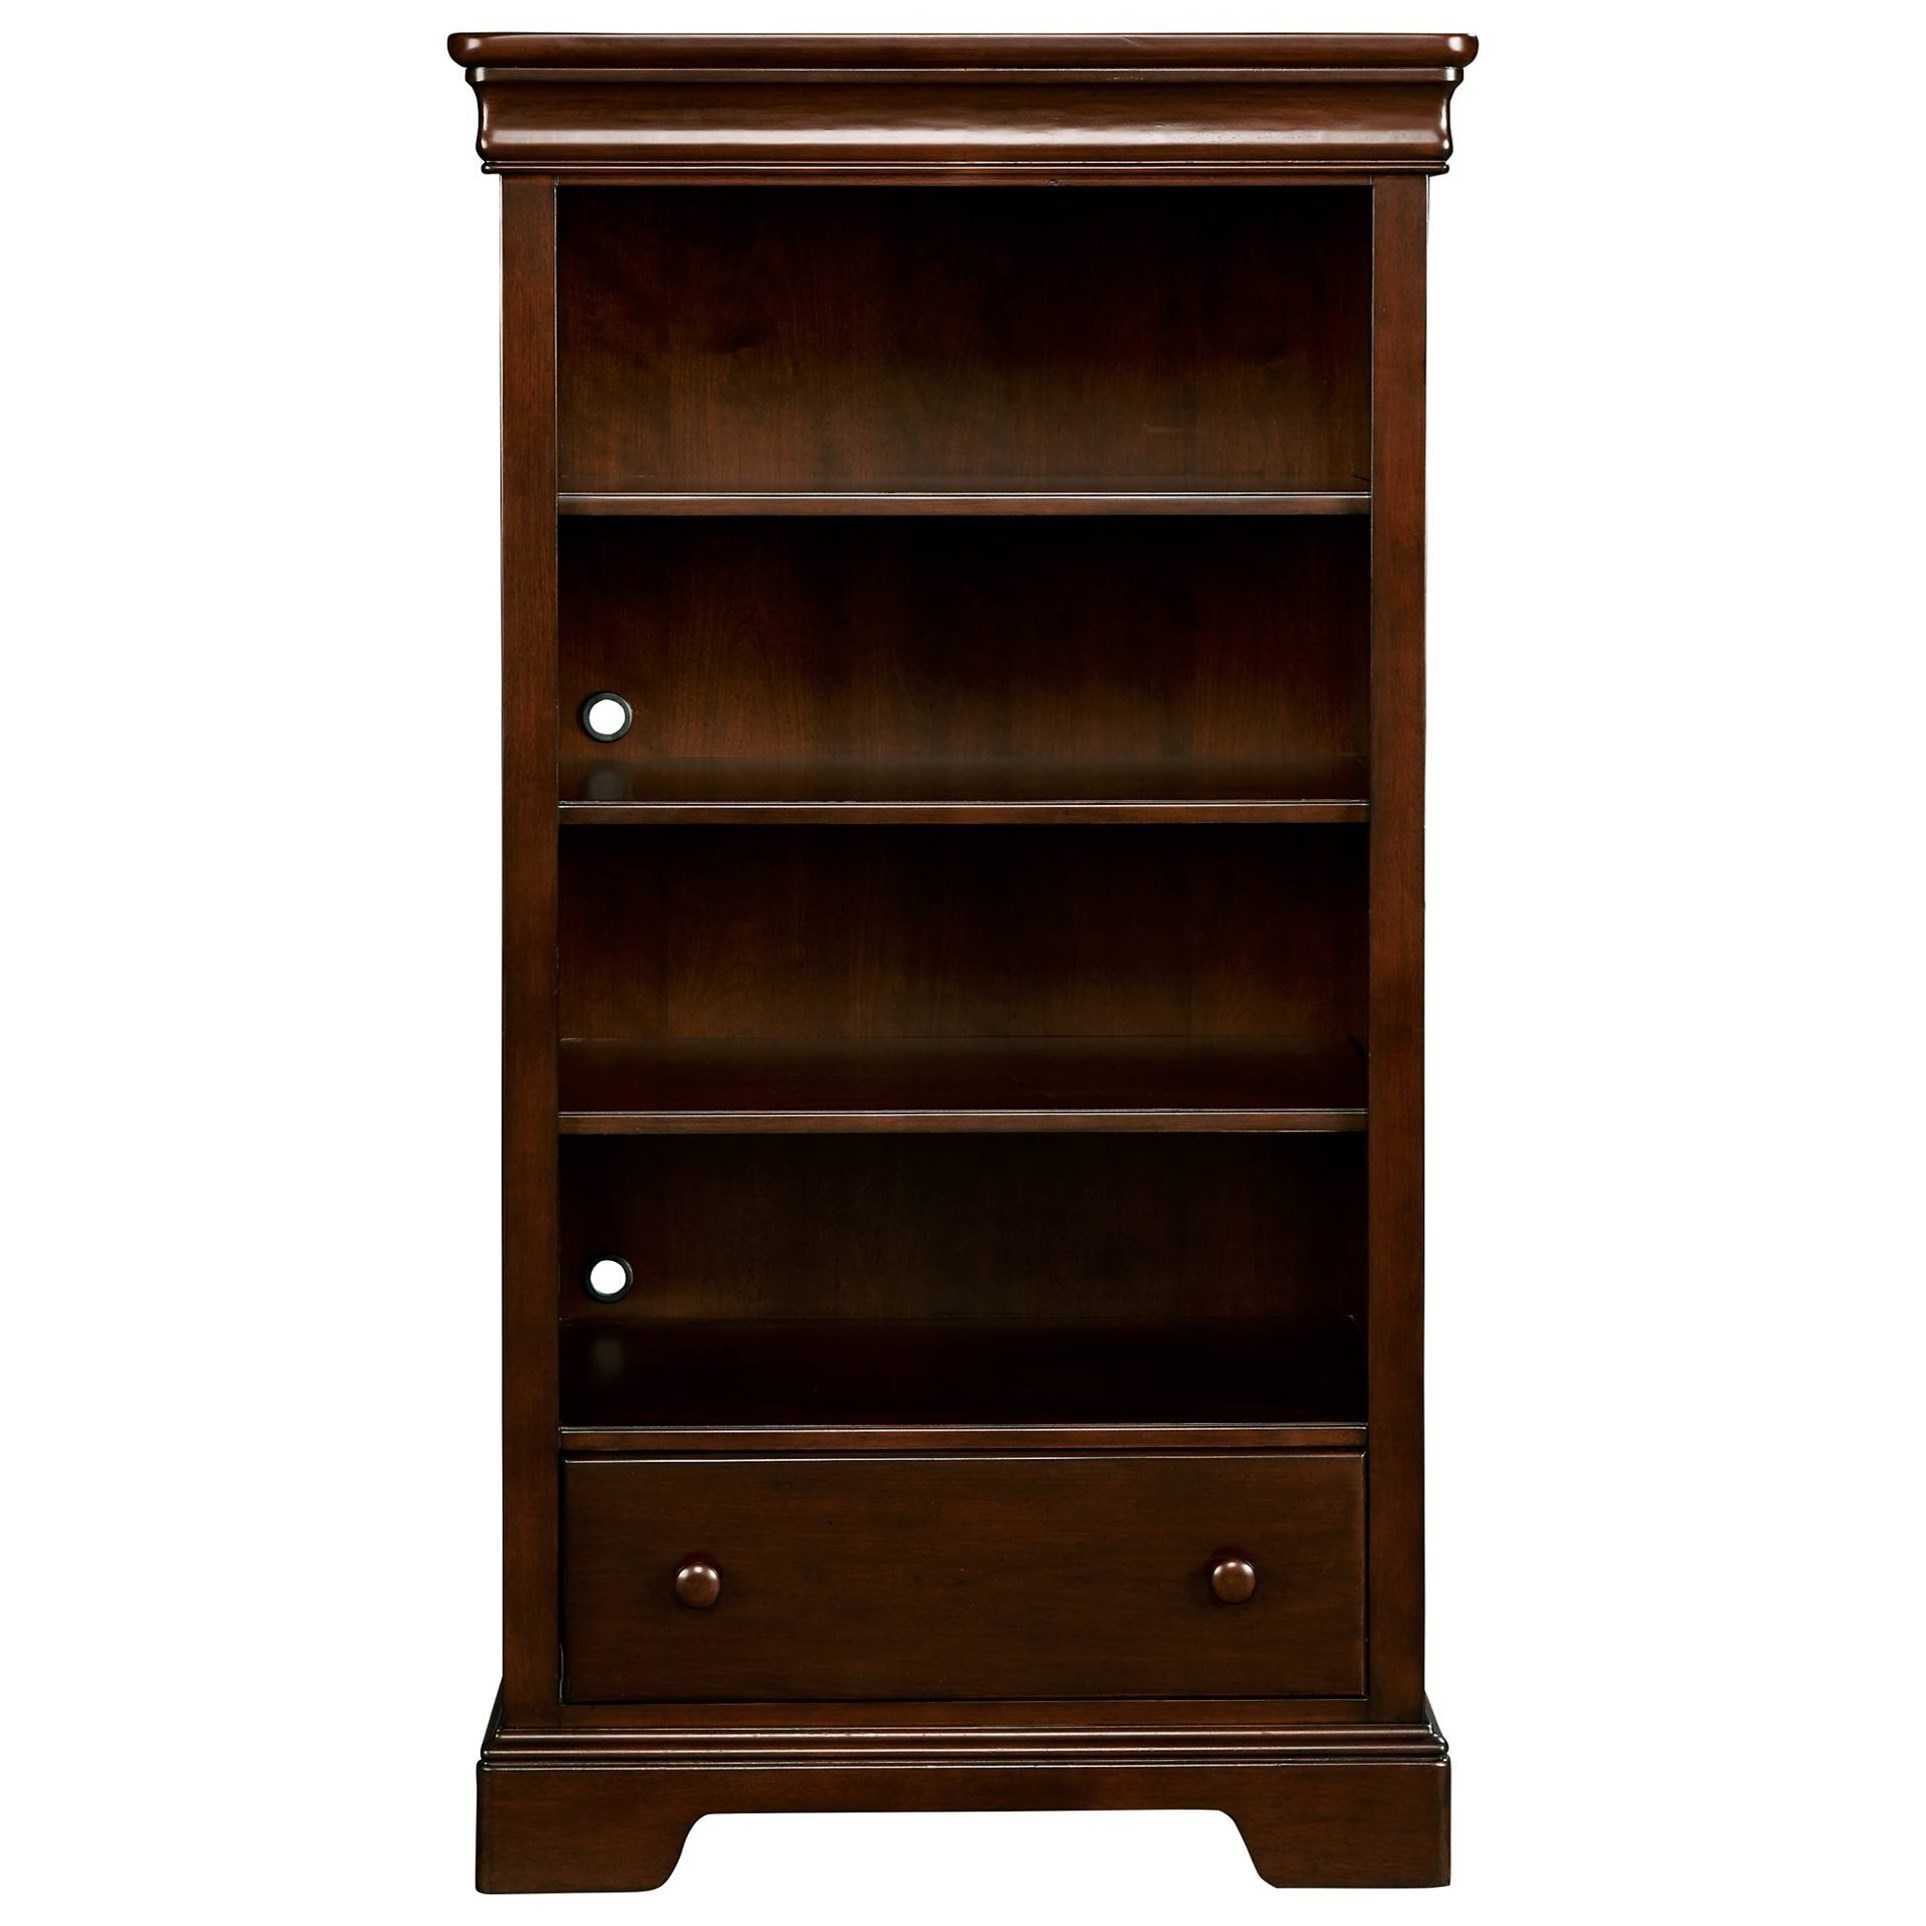 Stone & Leigh Furniture Teaberry Lane Bookcase - Item Number: 575-13-13